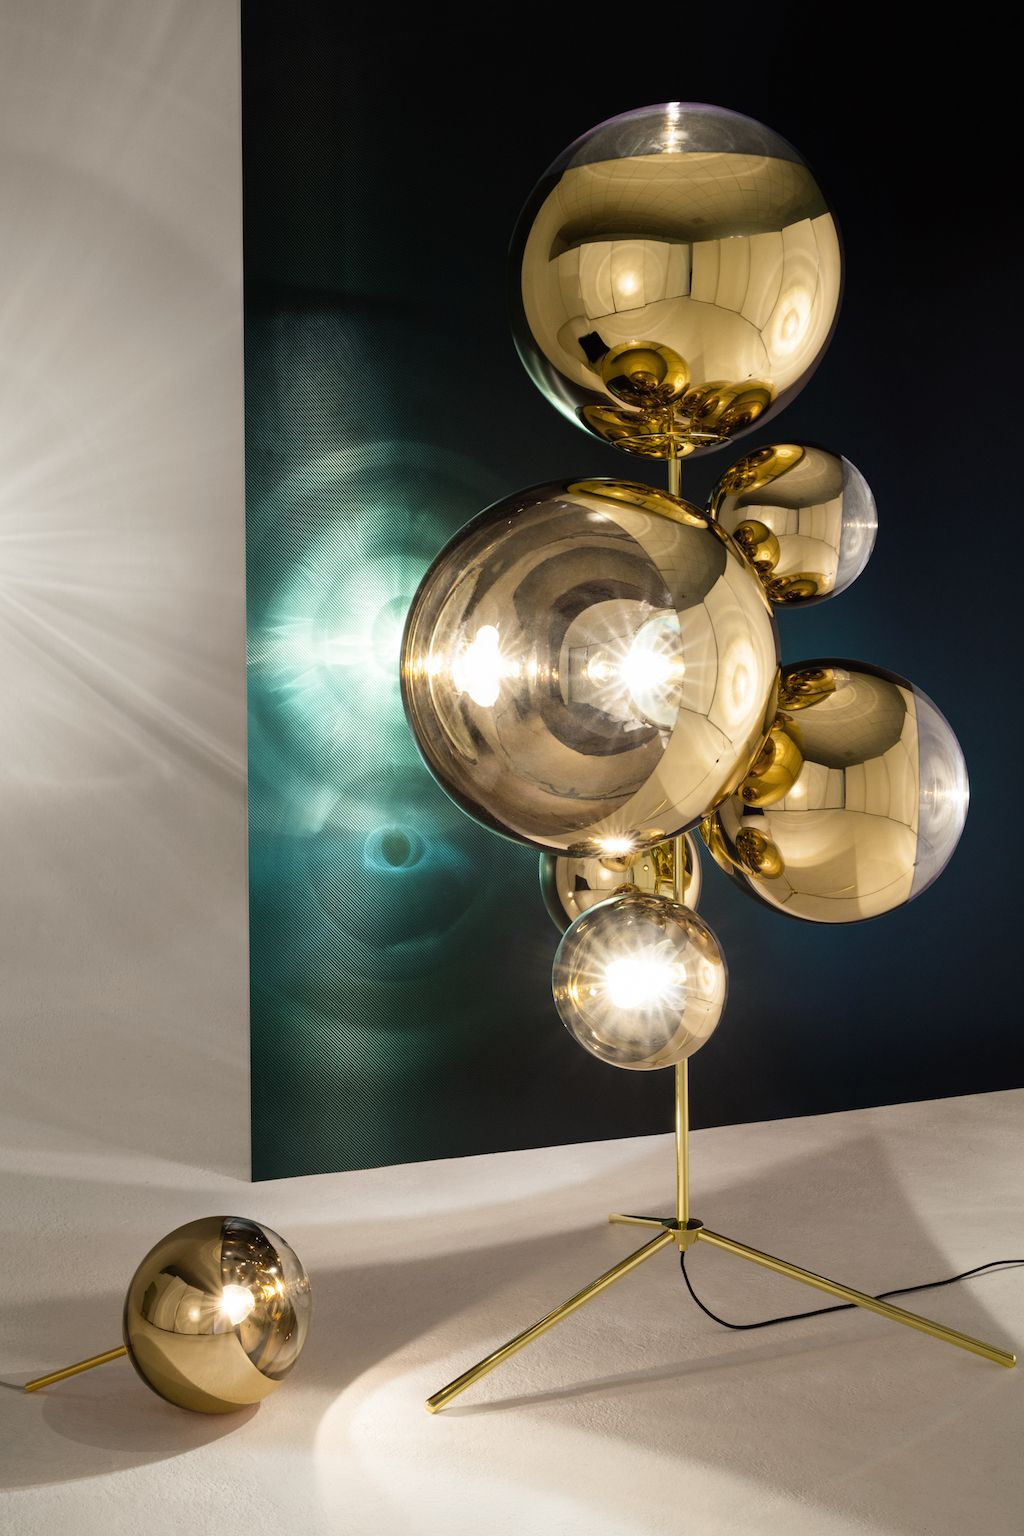 Tom Dixon Shares His Yesterday Today And Tomorrow Mirror Ball Tom Dixon Floor Lamp Lighting